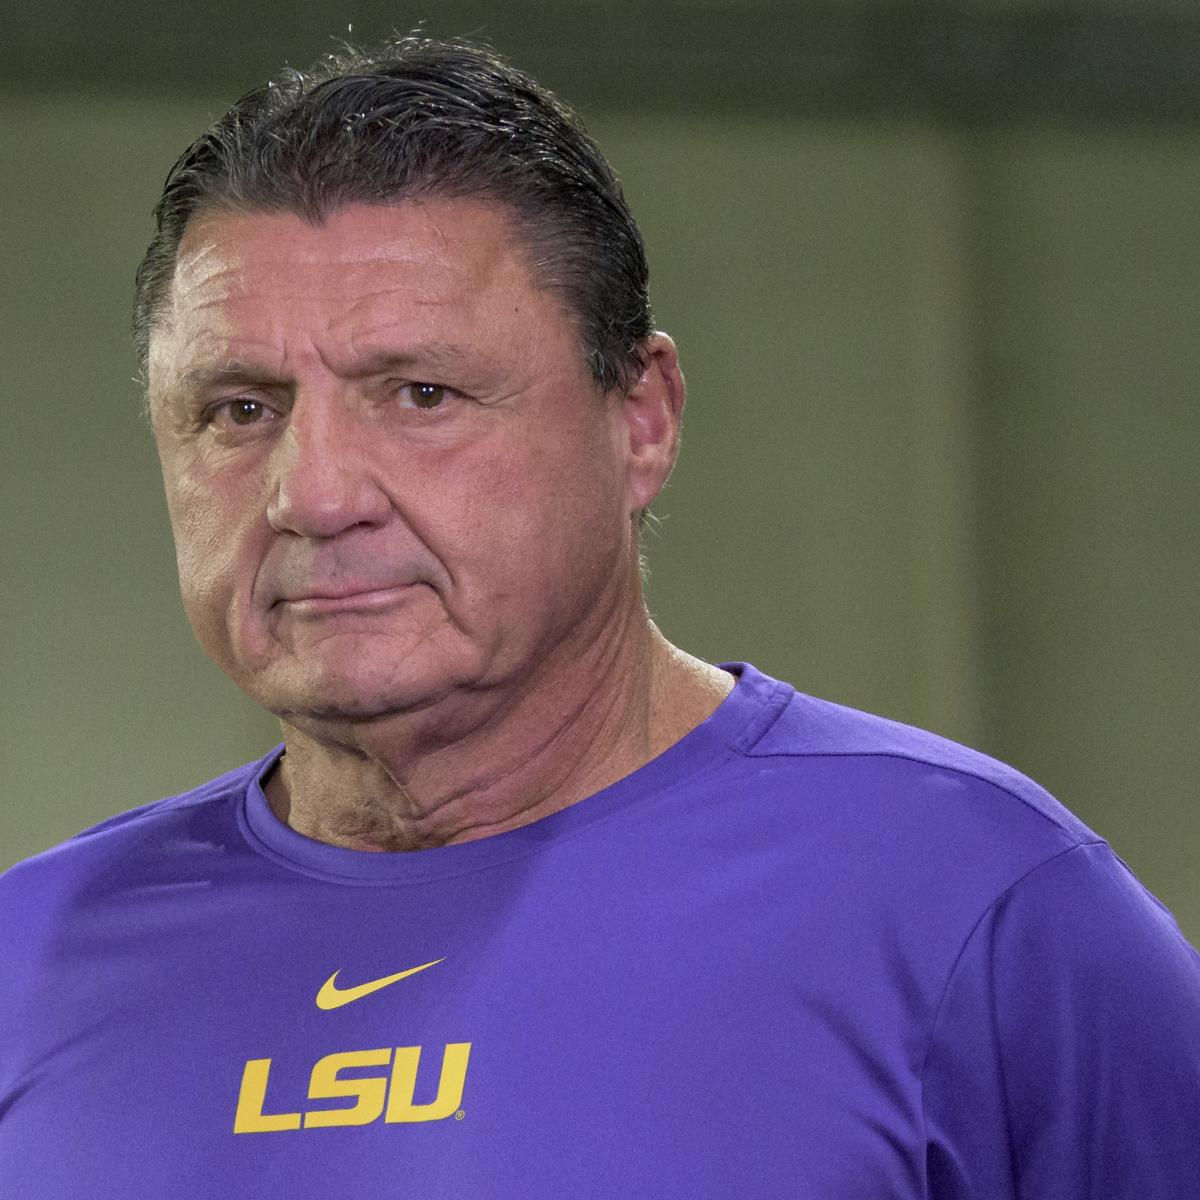 LSU Spring Game 2021: Top Storylines and Prospects to Watch